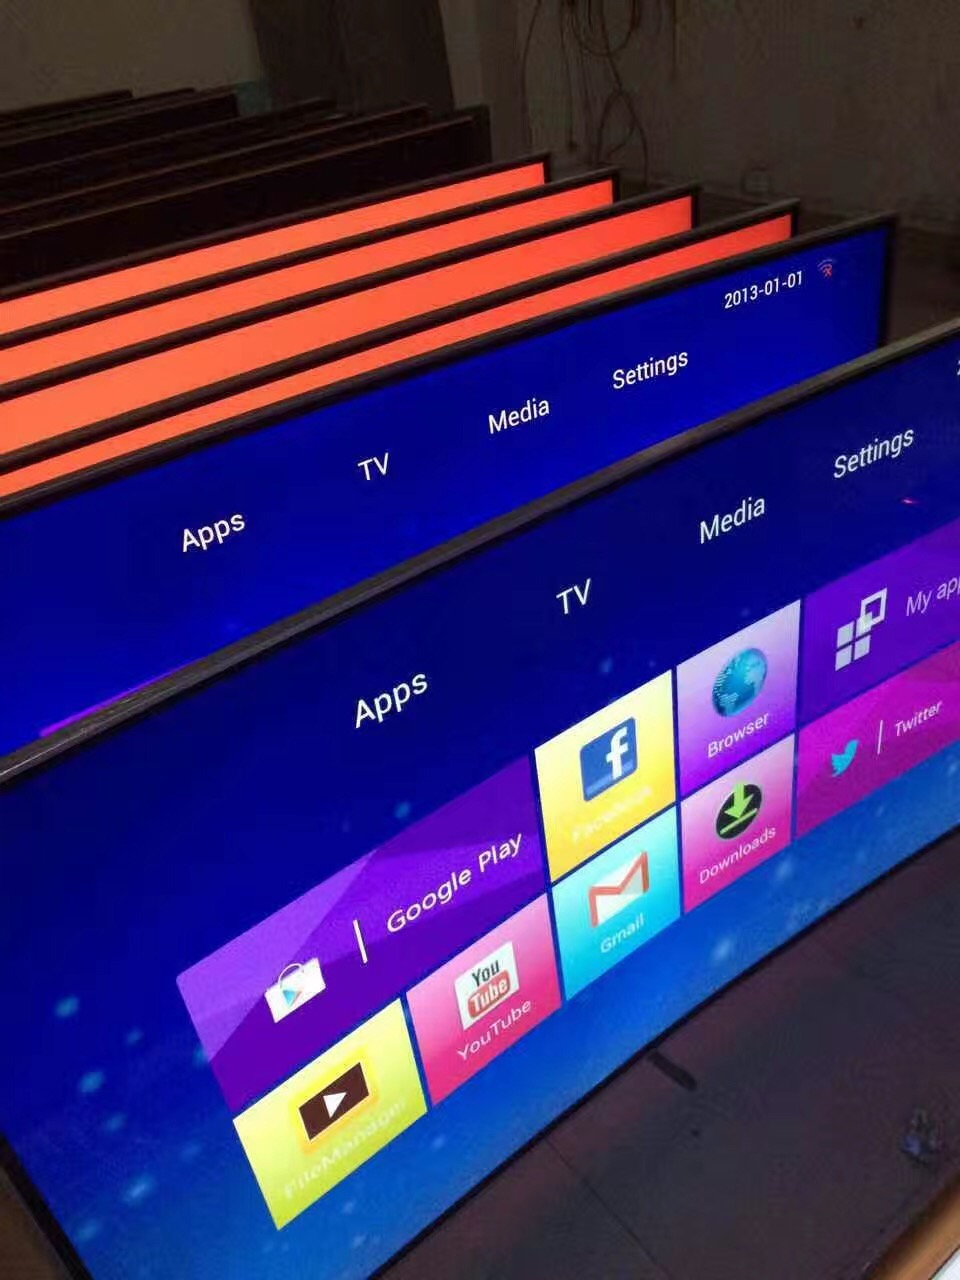 Customized OEM android TV 32 40 46 50 55 60 65 70 75 85 95 100 Inch Smart Androi